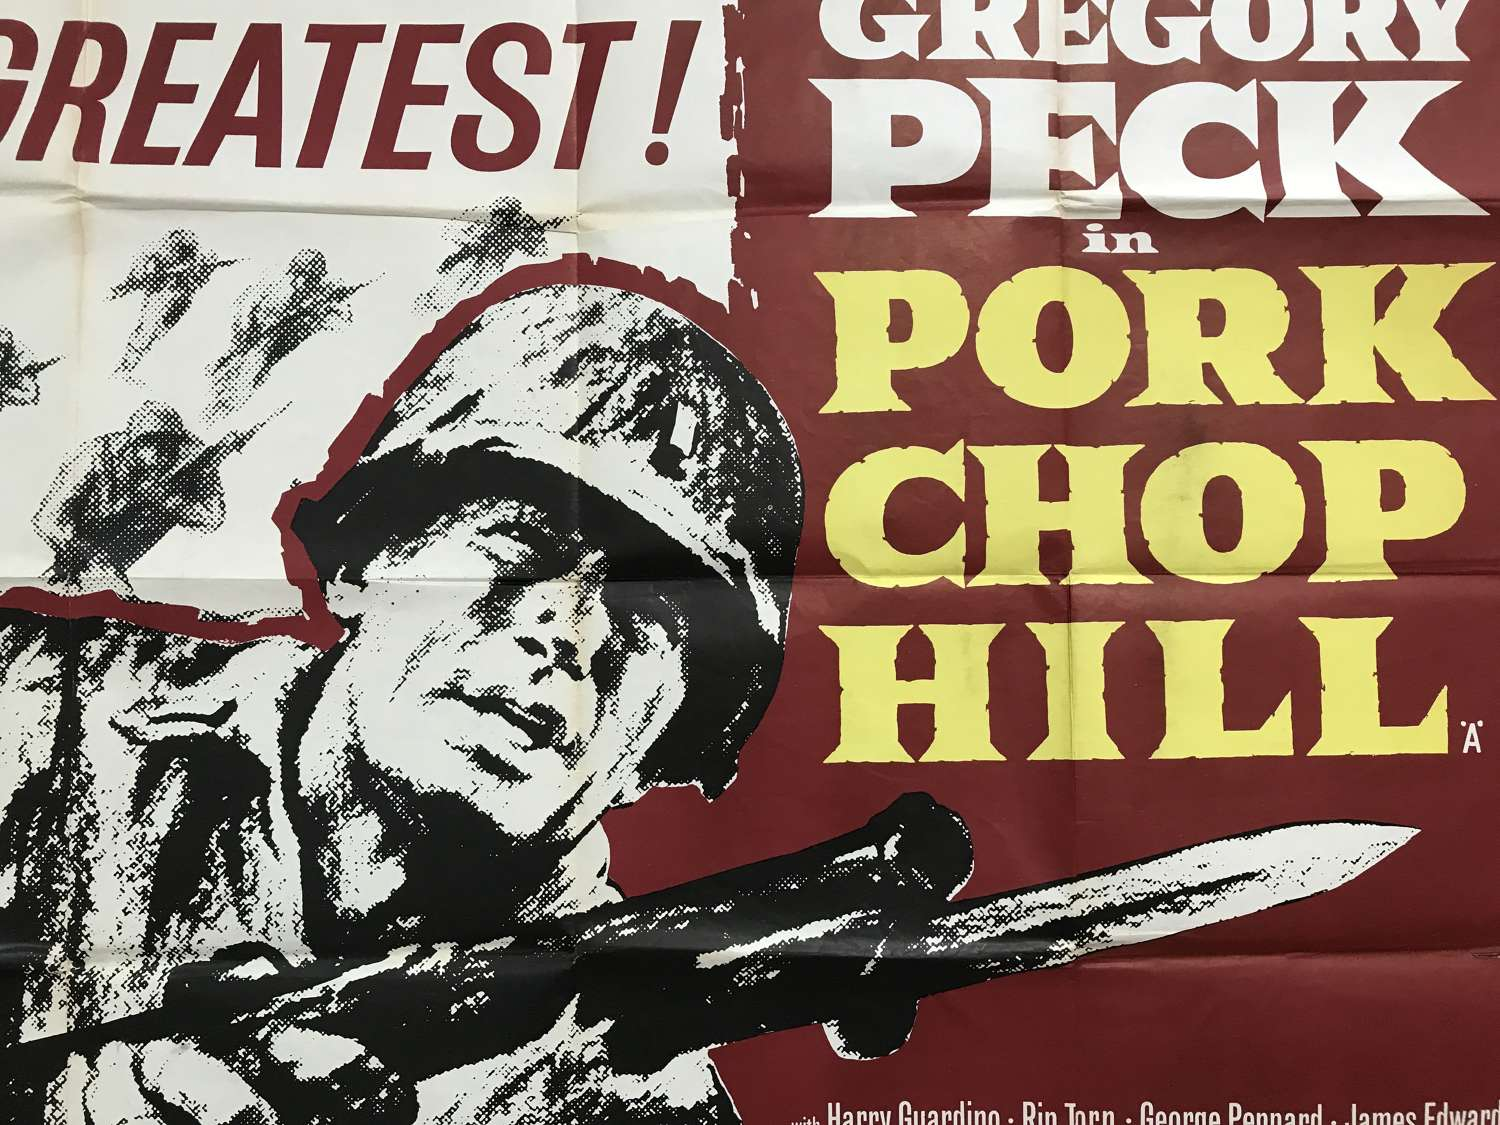 Pork chop Hill film poster starring Gregory Peck dated 1959